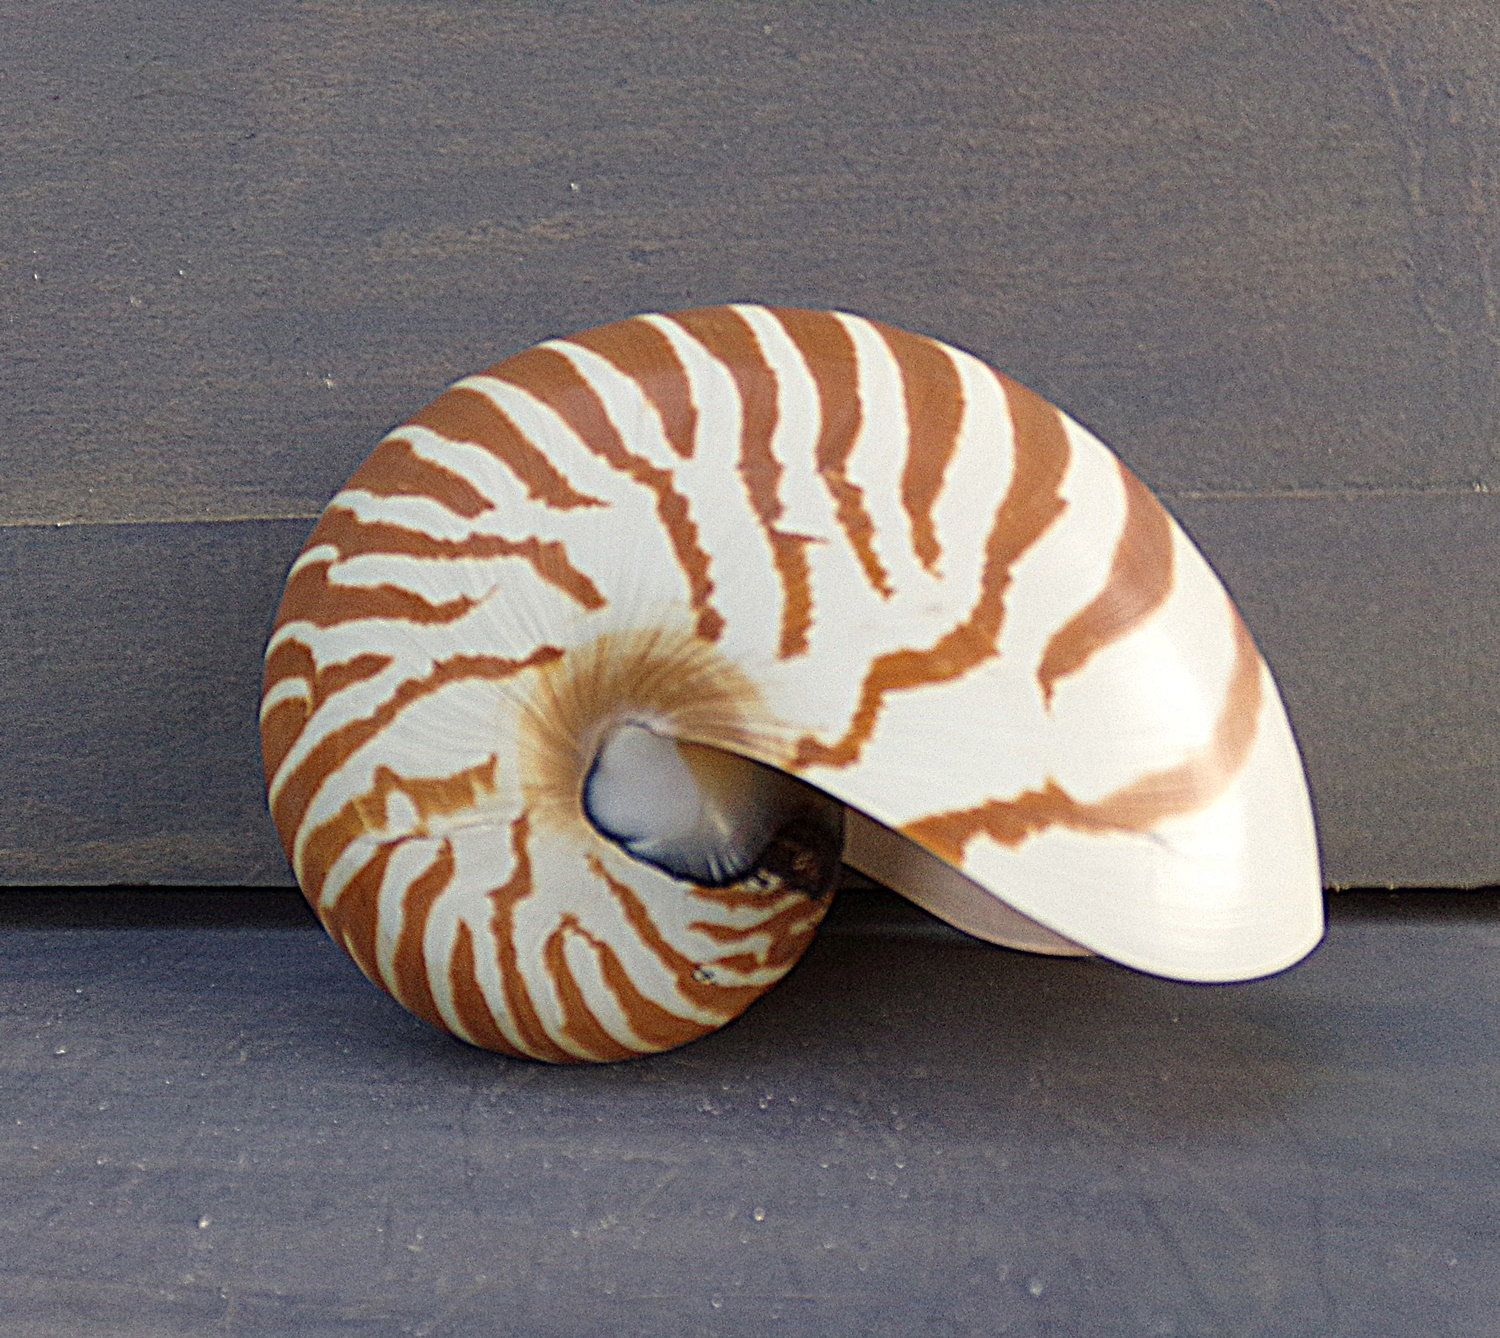 Chambered Nautilus Sea Shell 5 Inches Tiger Striped Beach Decor Wedding Decor Shell Collecting Genuine Sea Shell Nautilus Sea Shells Chambered Nautilus